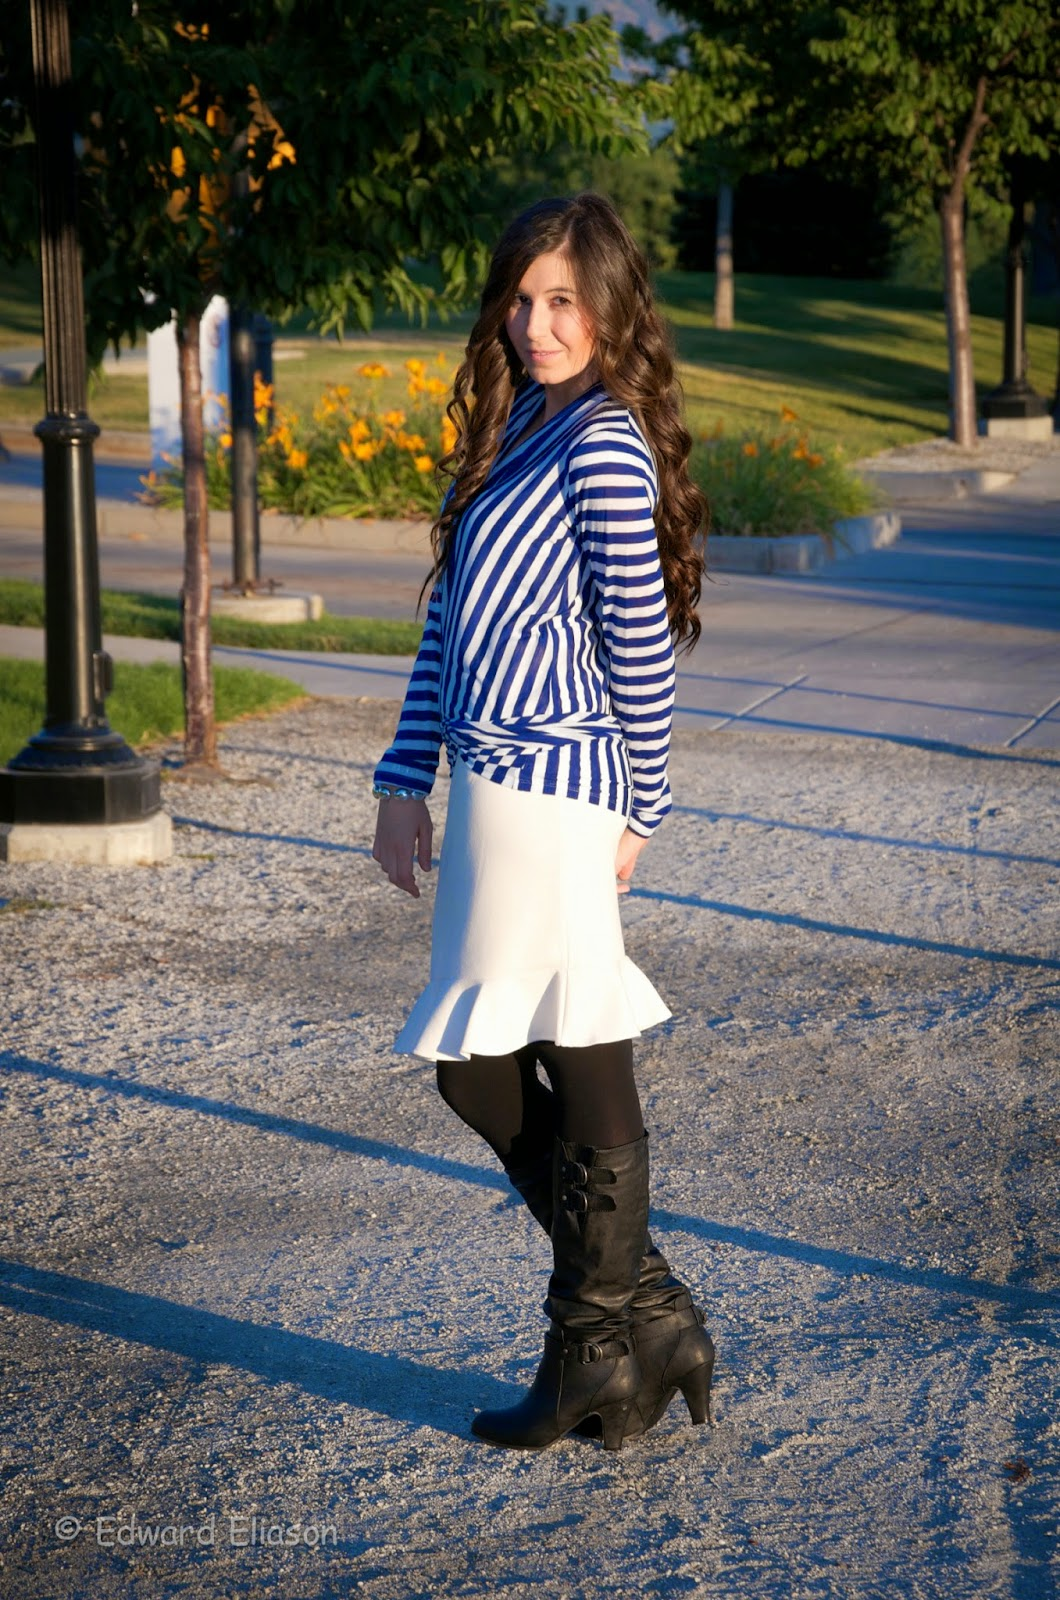 anatomie, cardigan wrap, cozy cosima, cardigan, winter outfit, fall outfit, pretty outfit, heels, boots, boots outfit, frill skirt, tulip skirt, white skirt, blue and white,